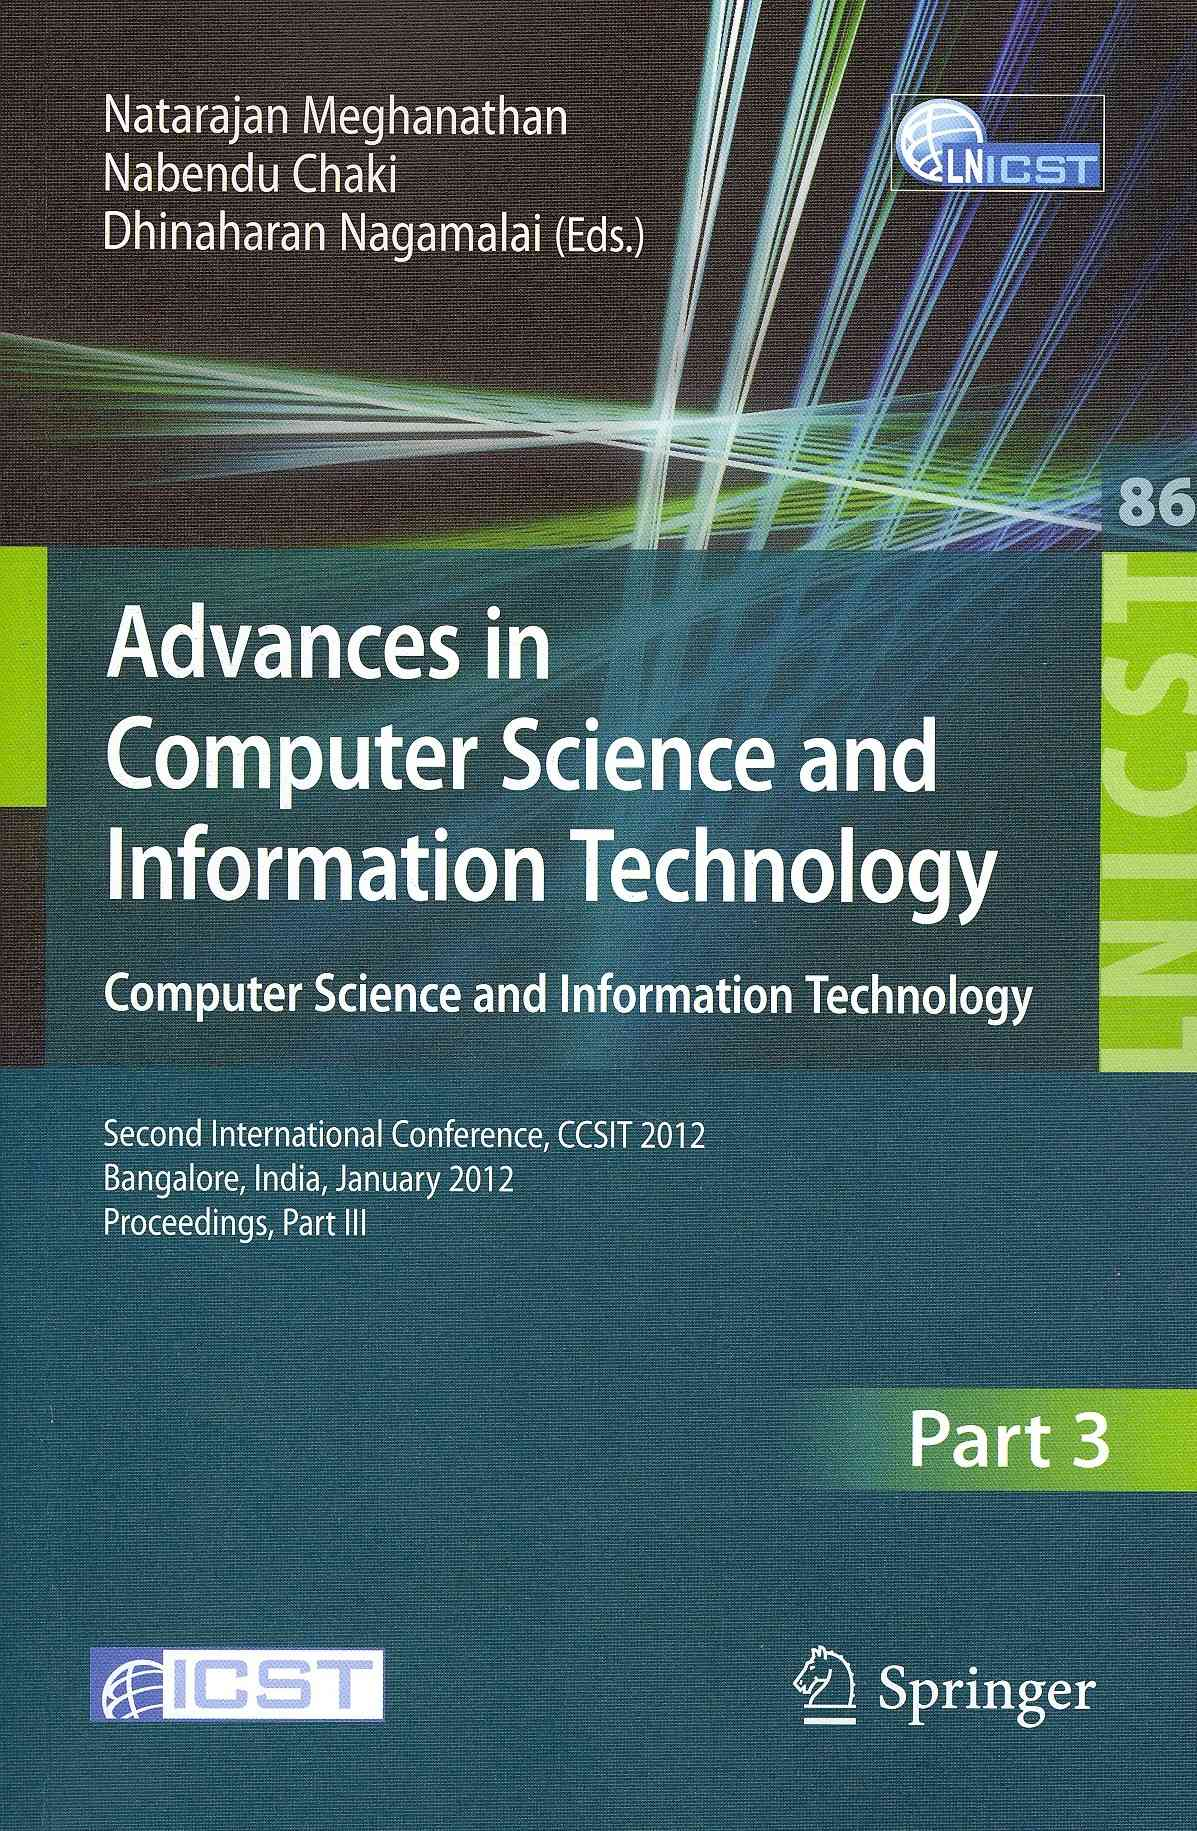 Advances in Computer Science and Information Technology. By Meghanathan, Natarajan (EDT)/ Chaki, Nabendu (EDT)/ Nagamalai, Dhinaharan (EDT)